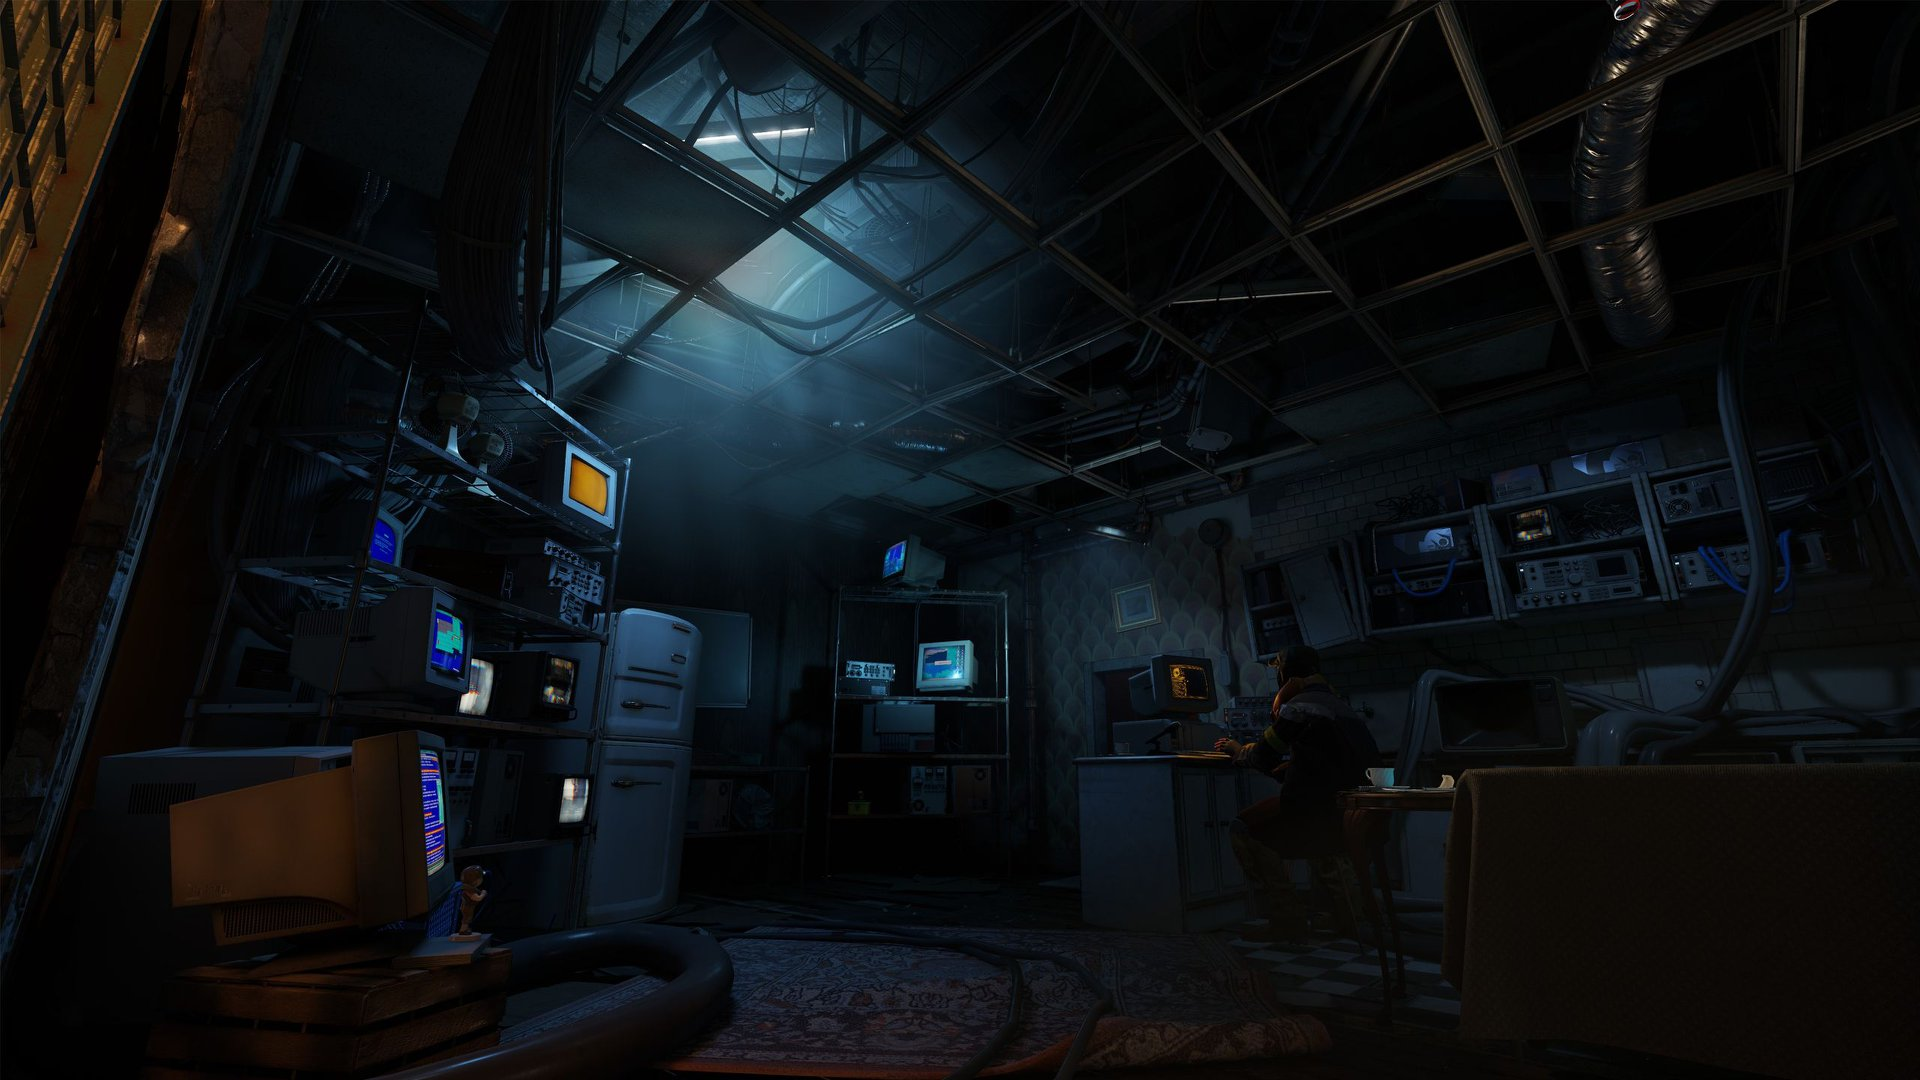 half life alyx announcement trailer, Half Life: Alyx announcement trailer revealed, set between Half Life 1 and 2, Gadget Pilipinas